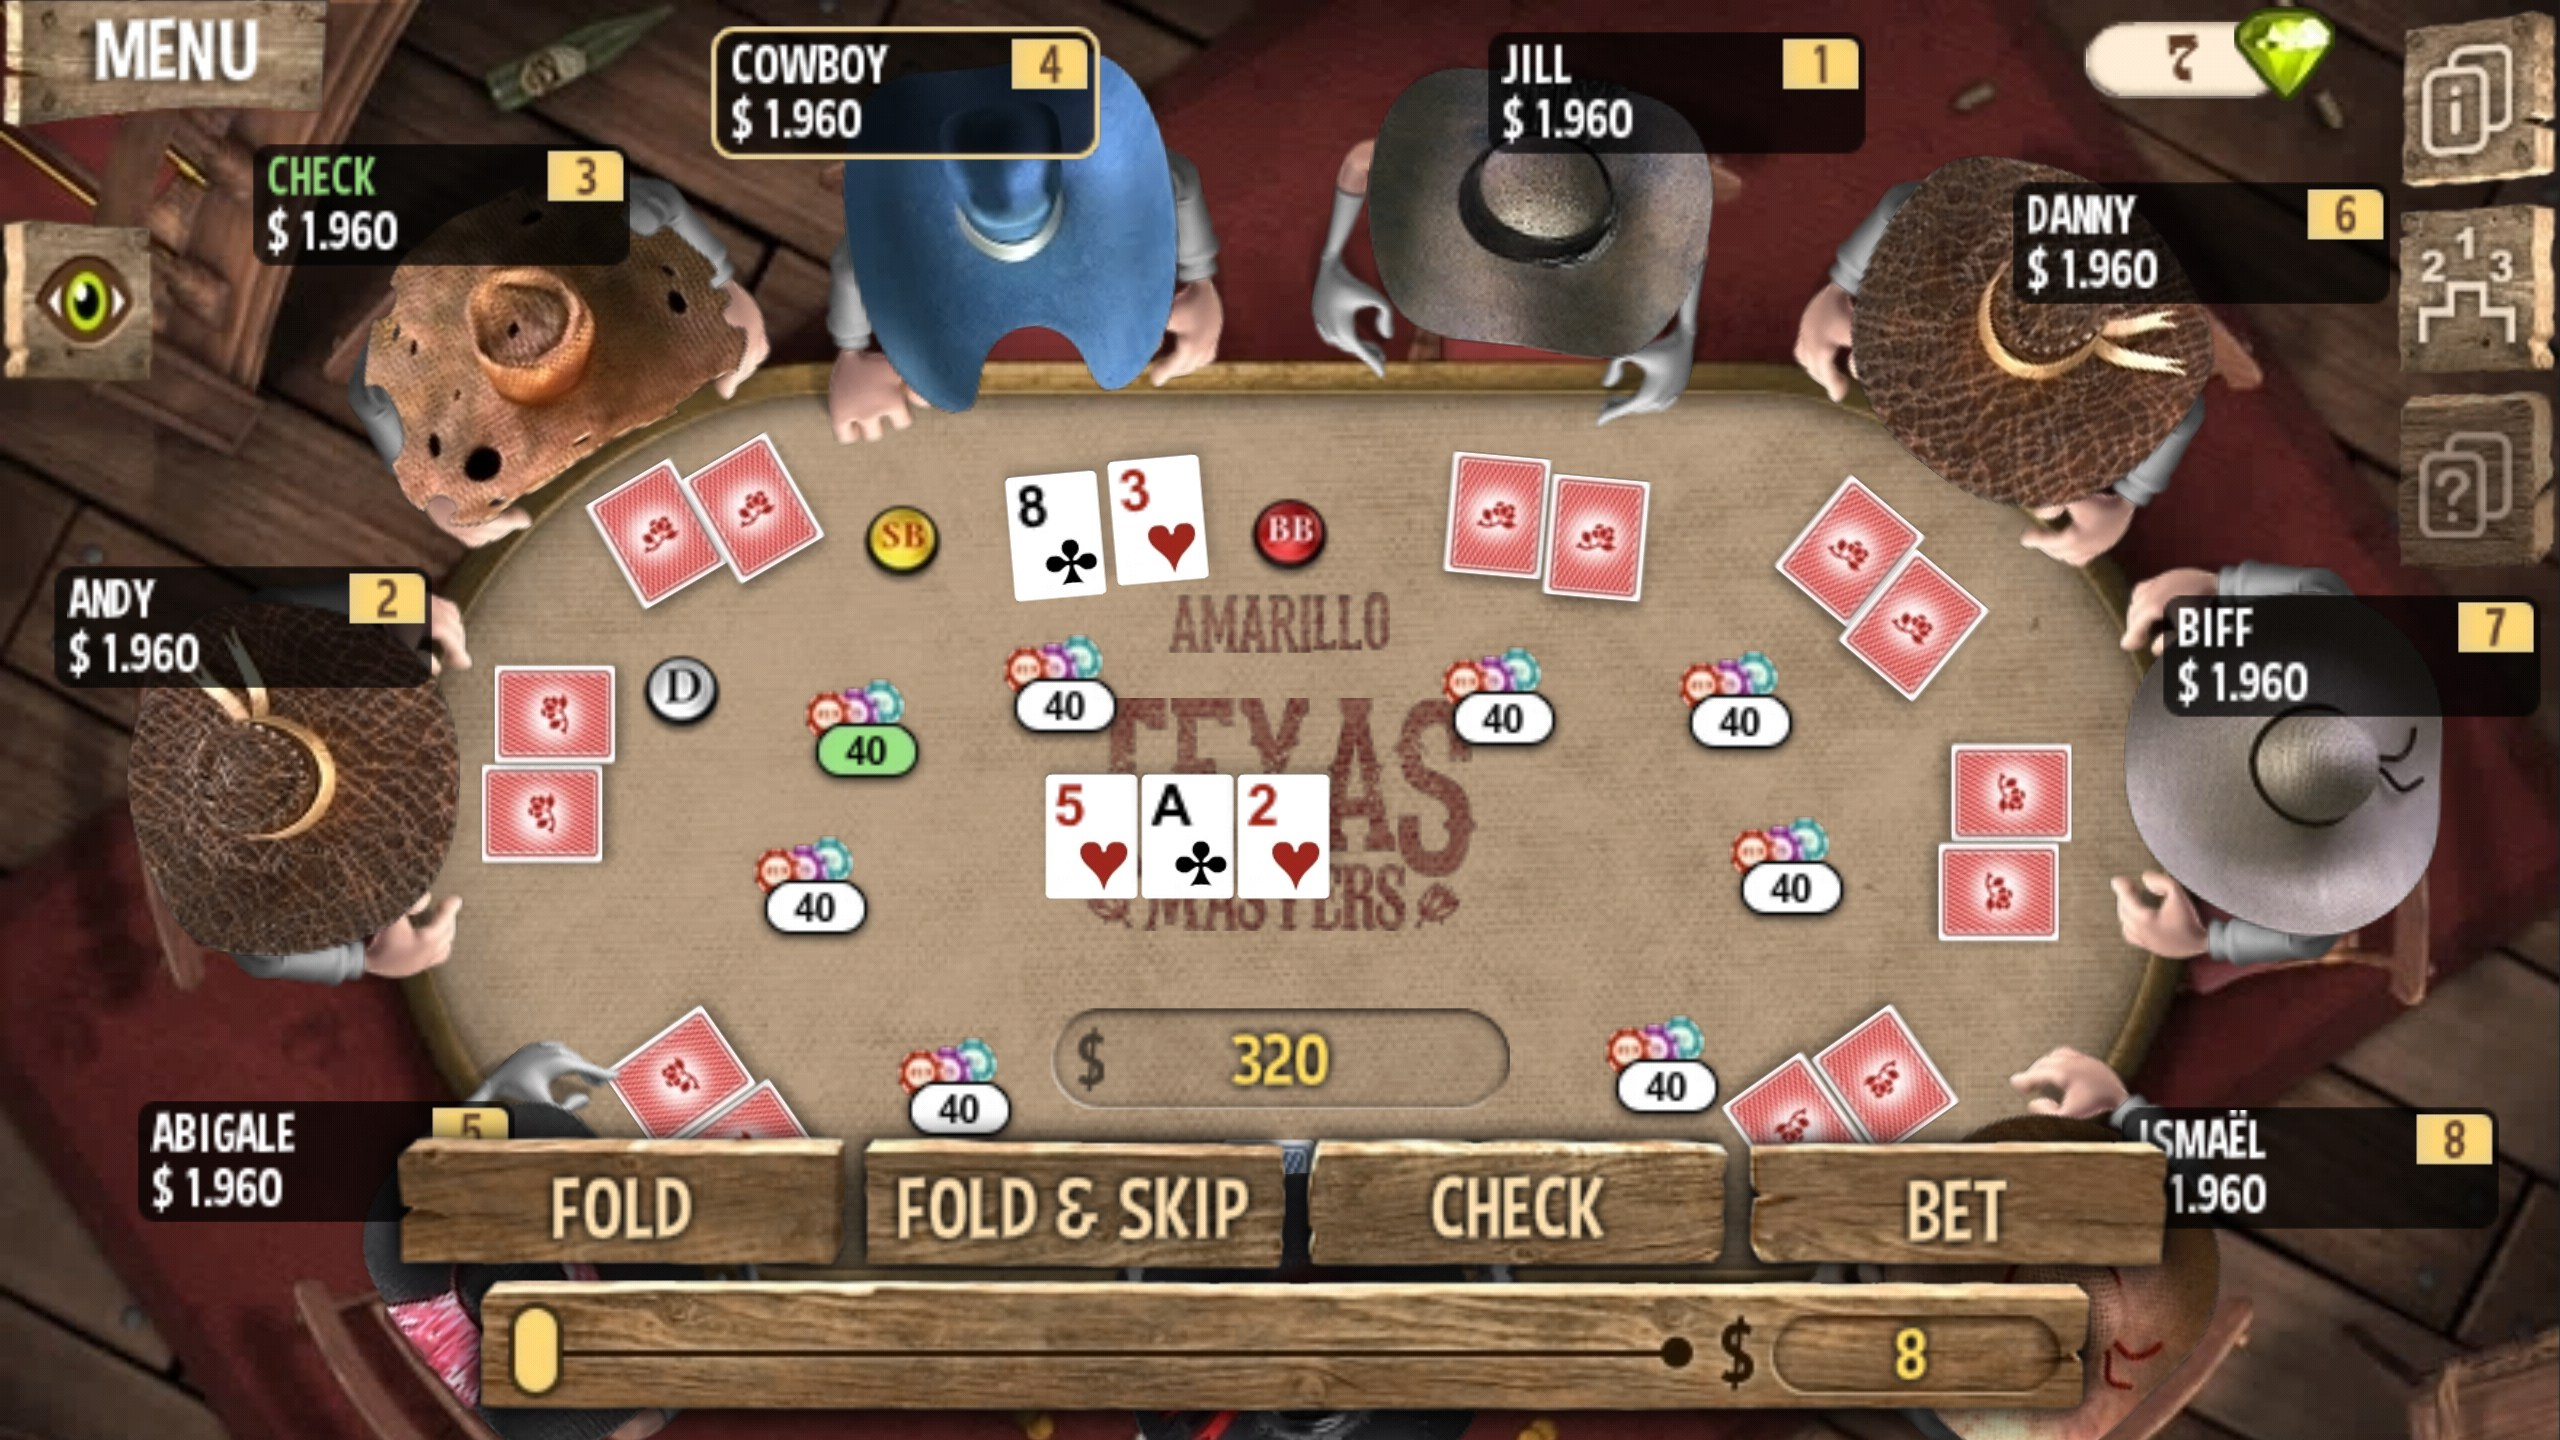 Play poker in the Wild West